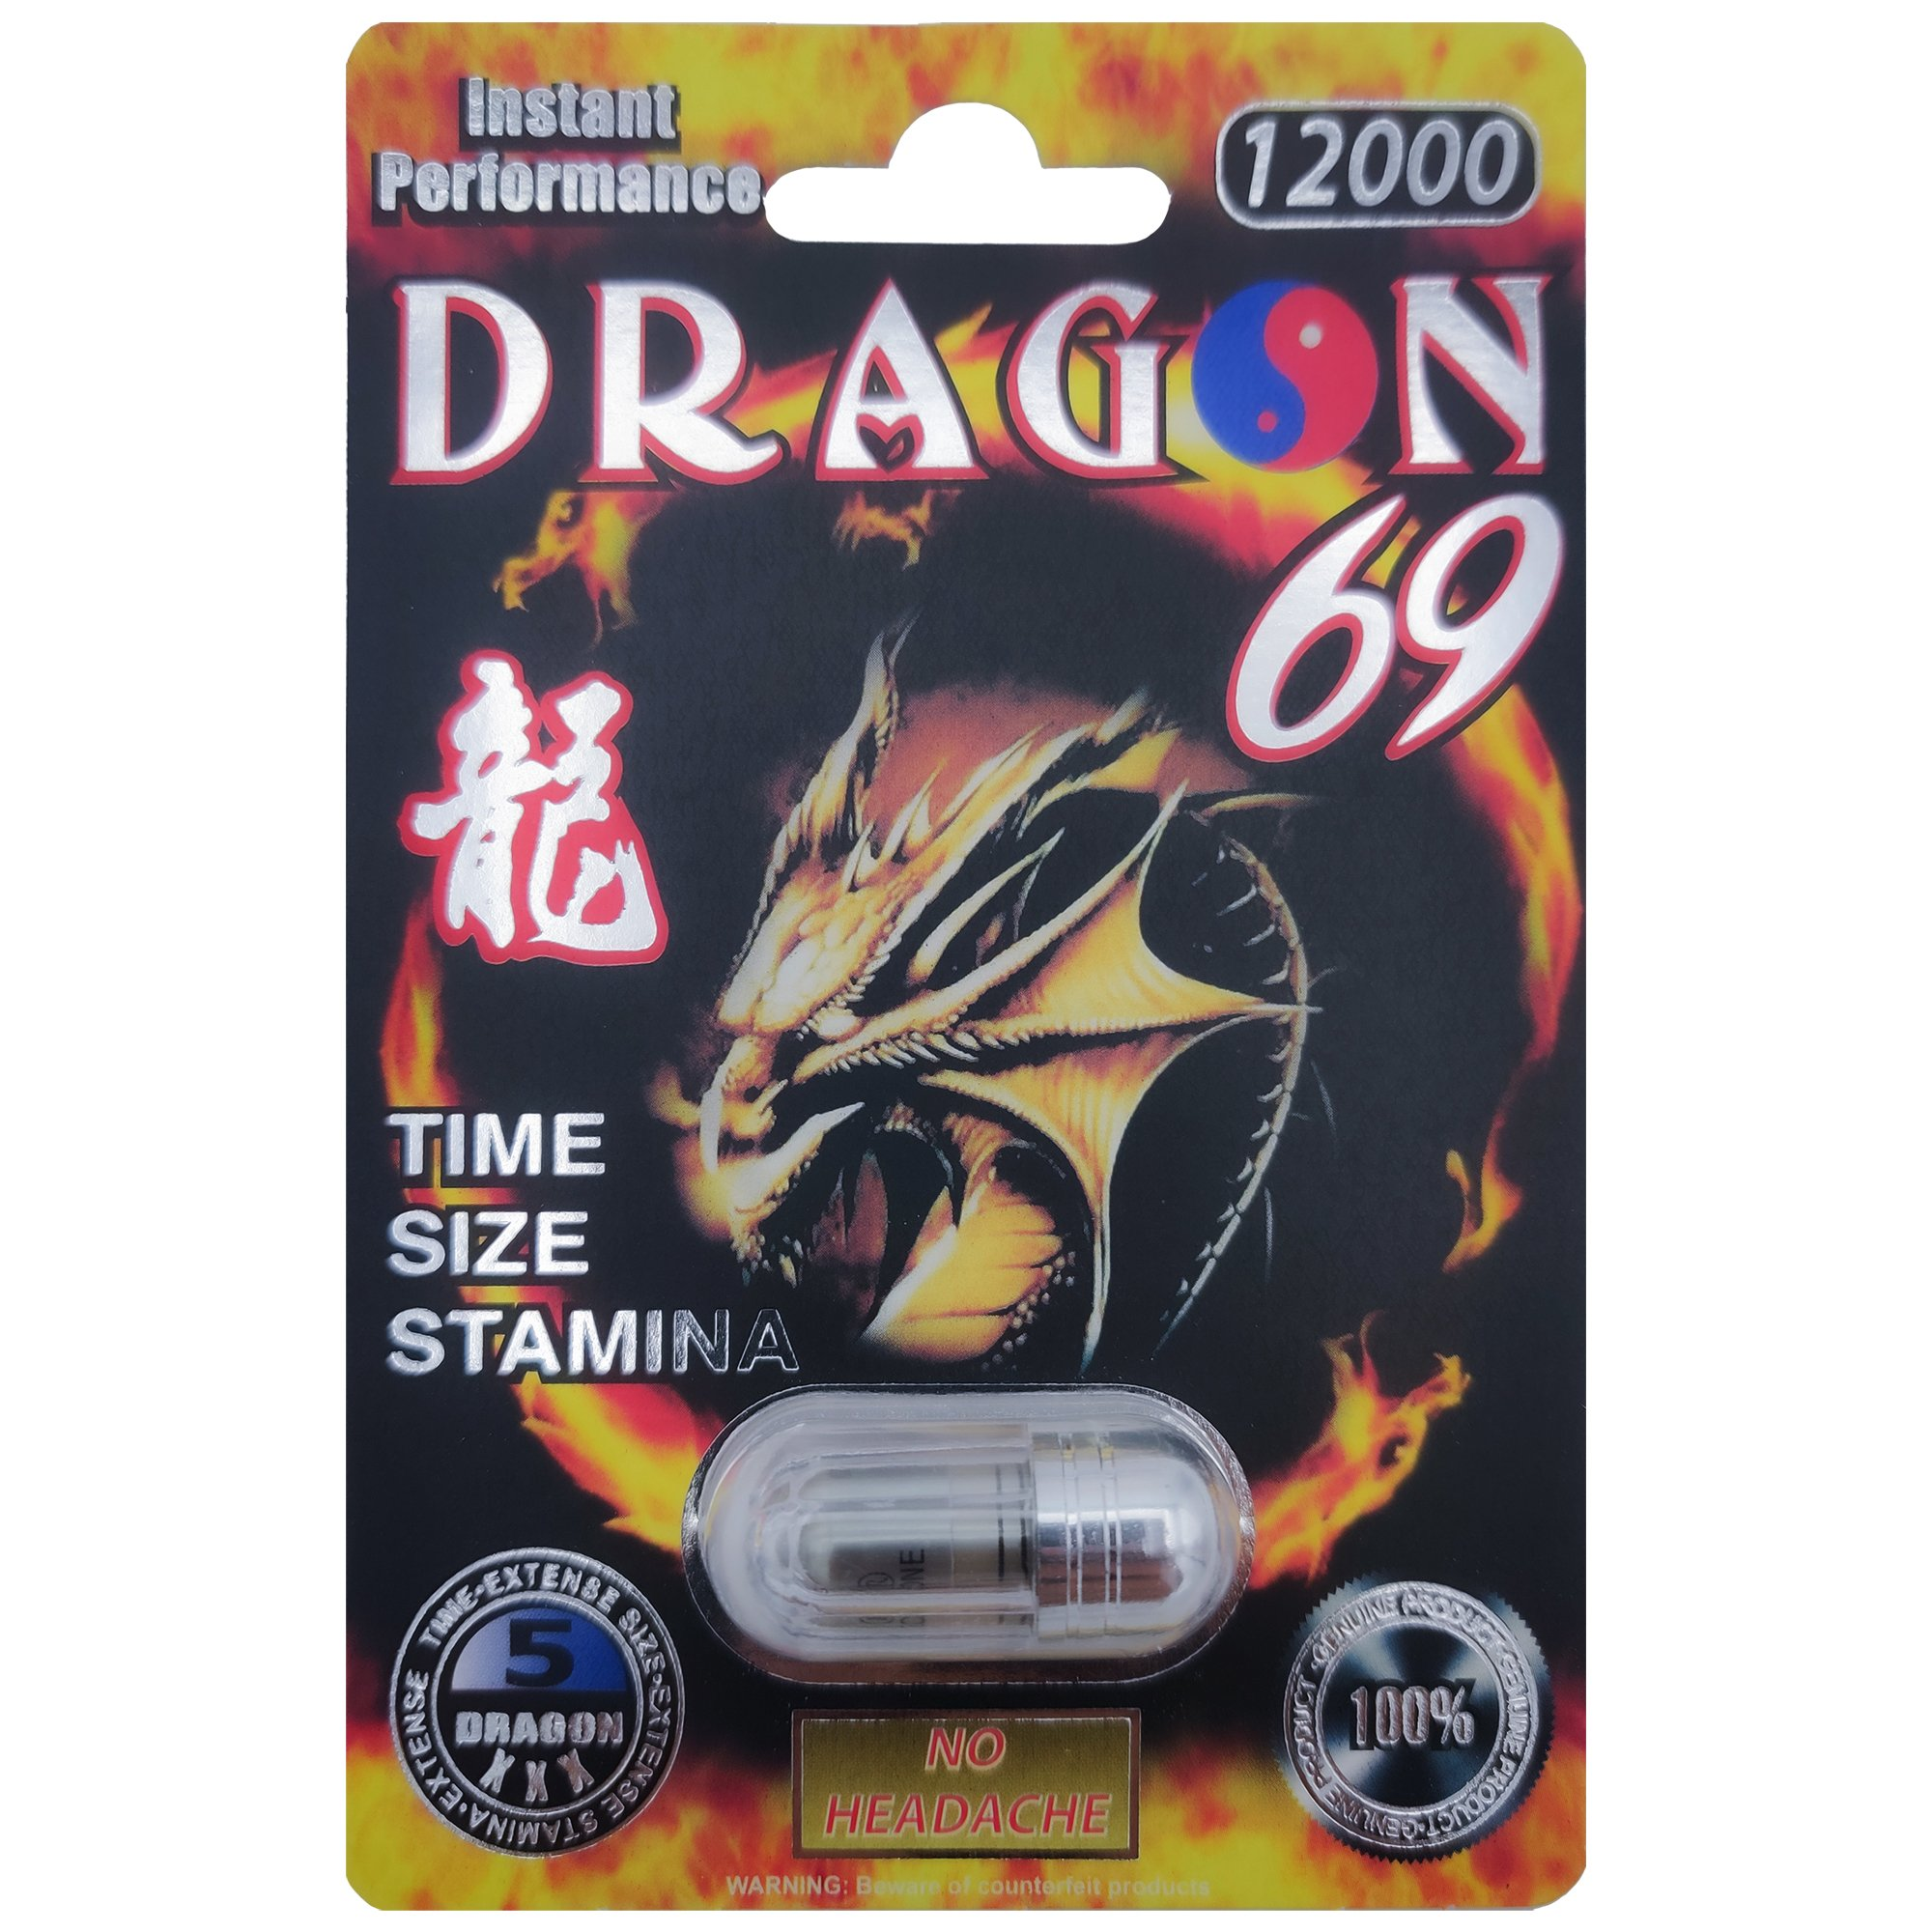 Dragon 69 Platinum 12000 Male Enhancement Pill